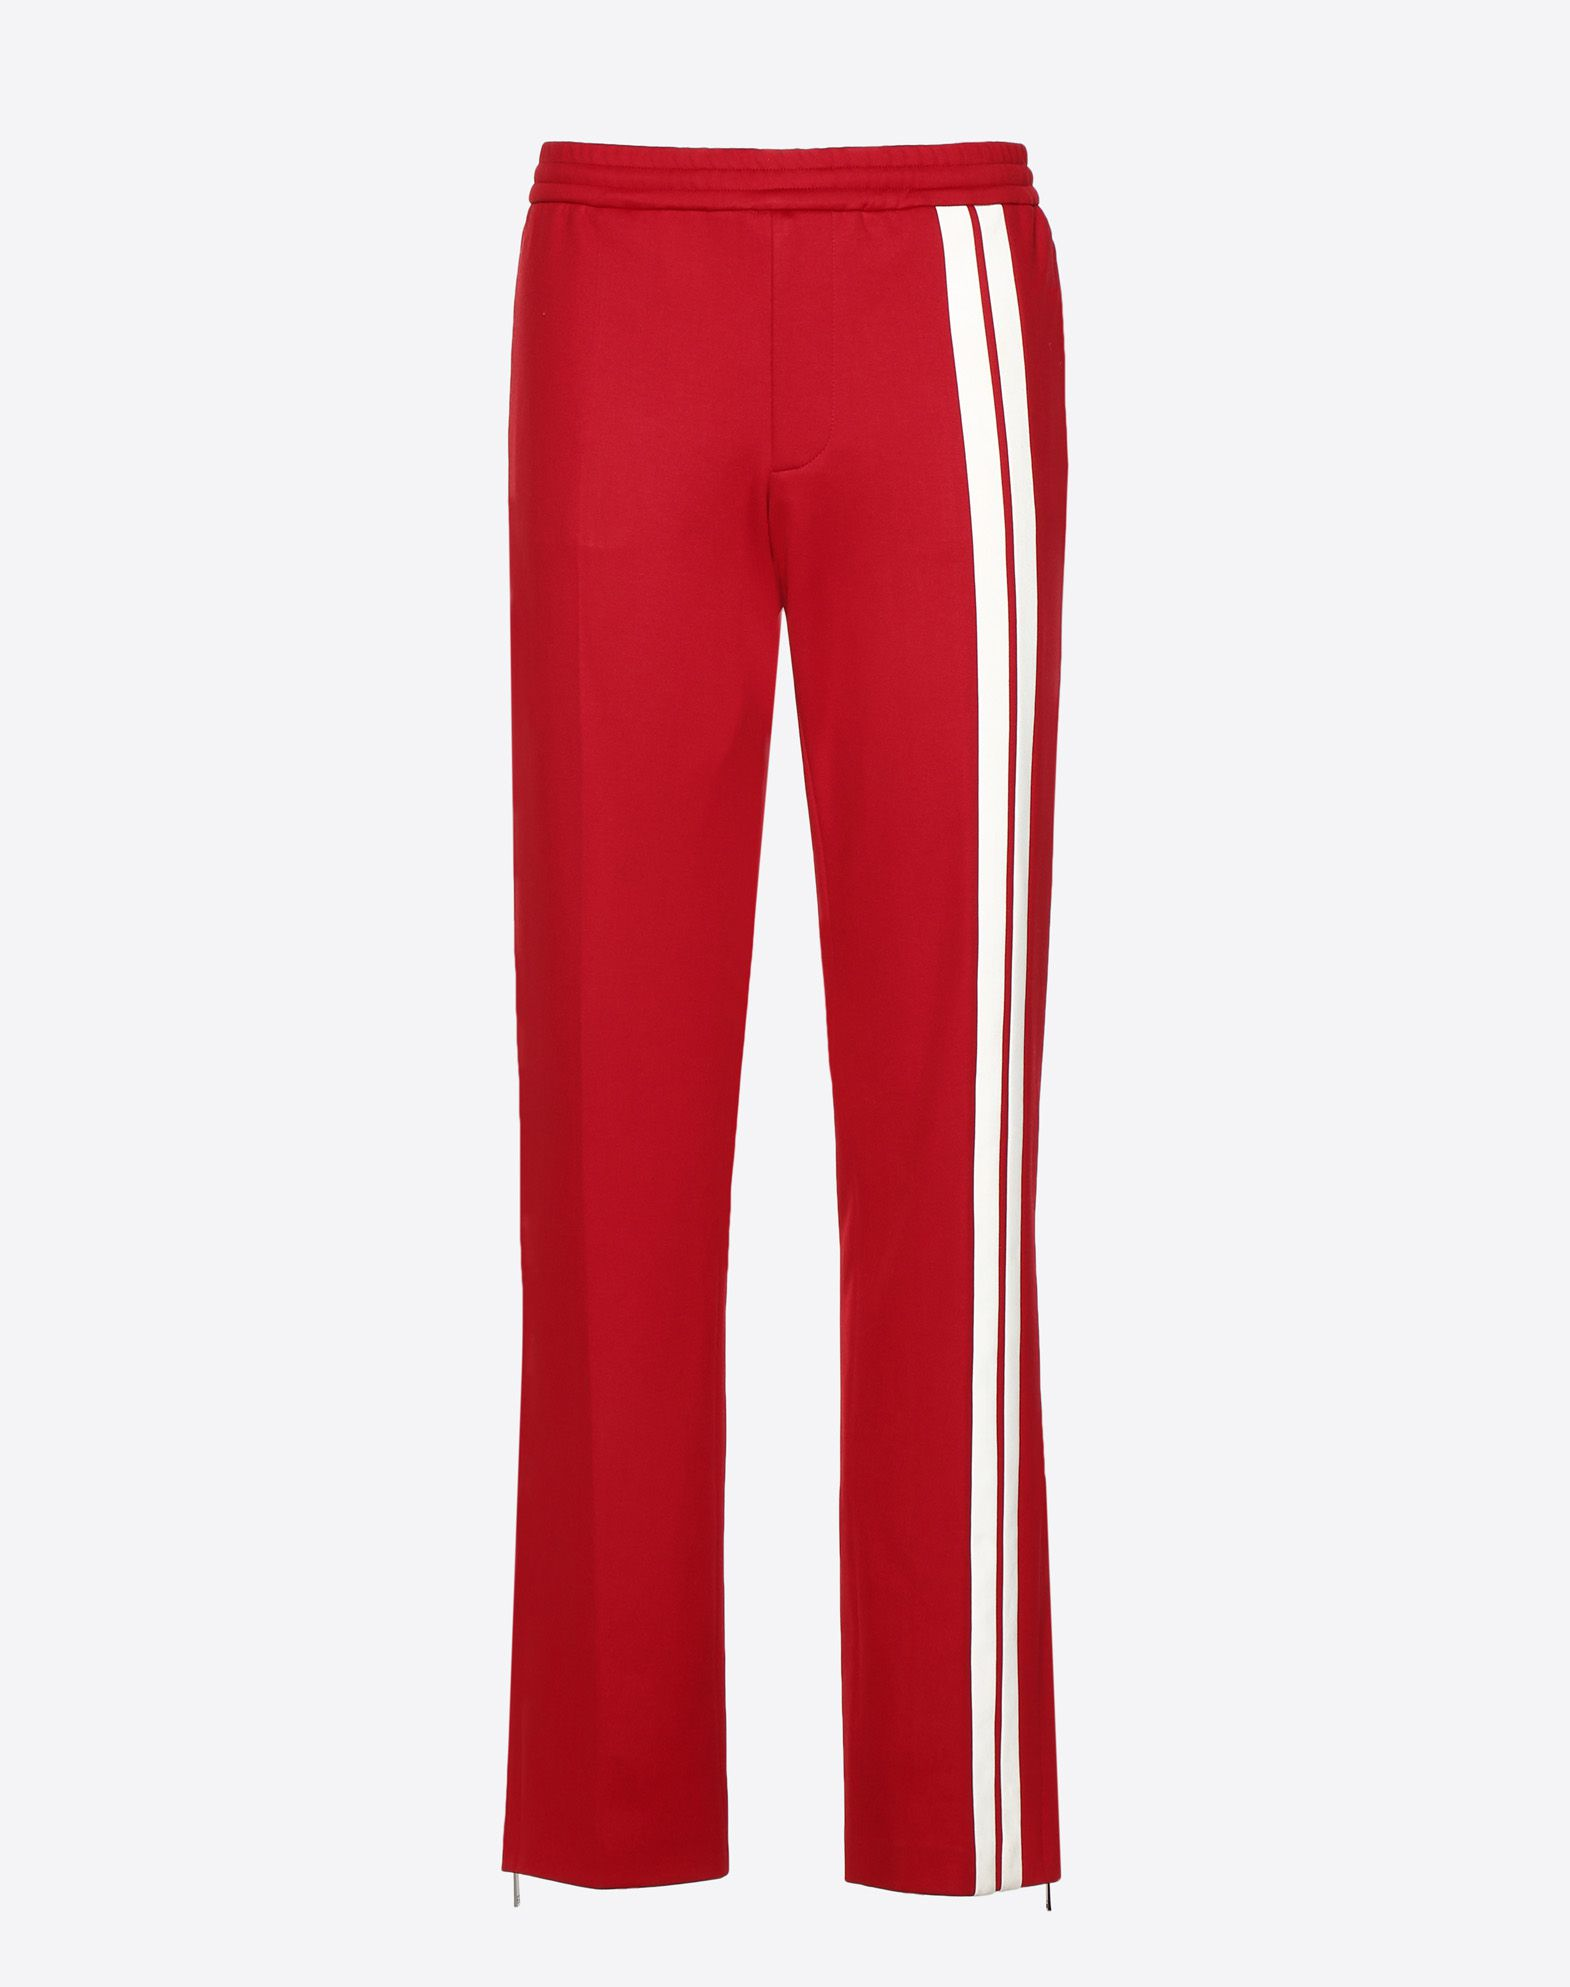 VALENTINO UOMO Trousers with contrasting bands Trousers U f